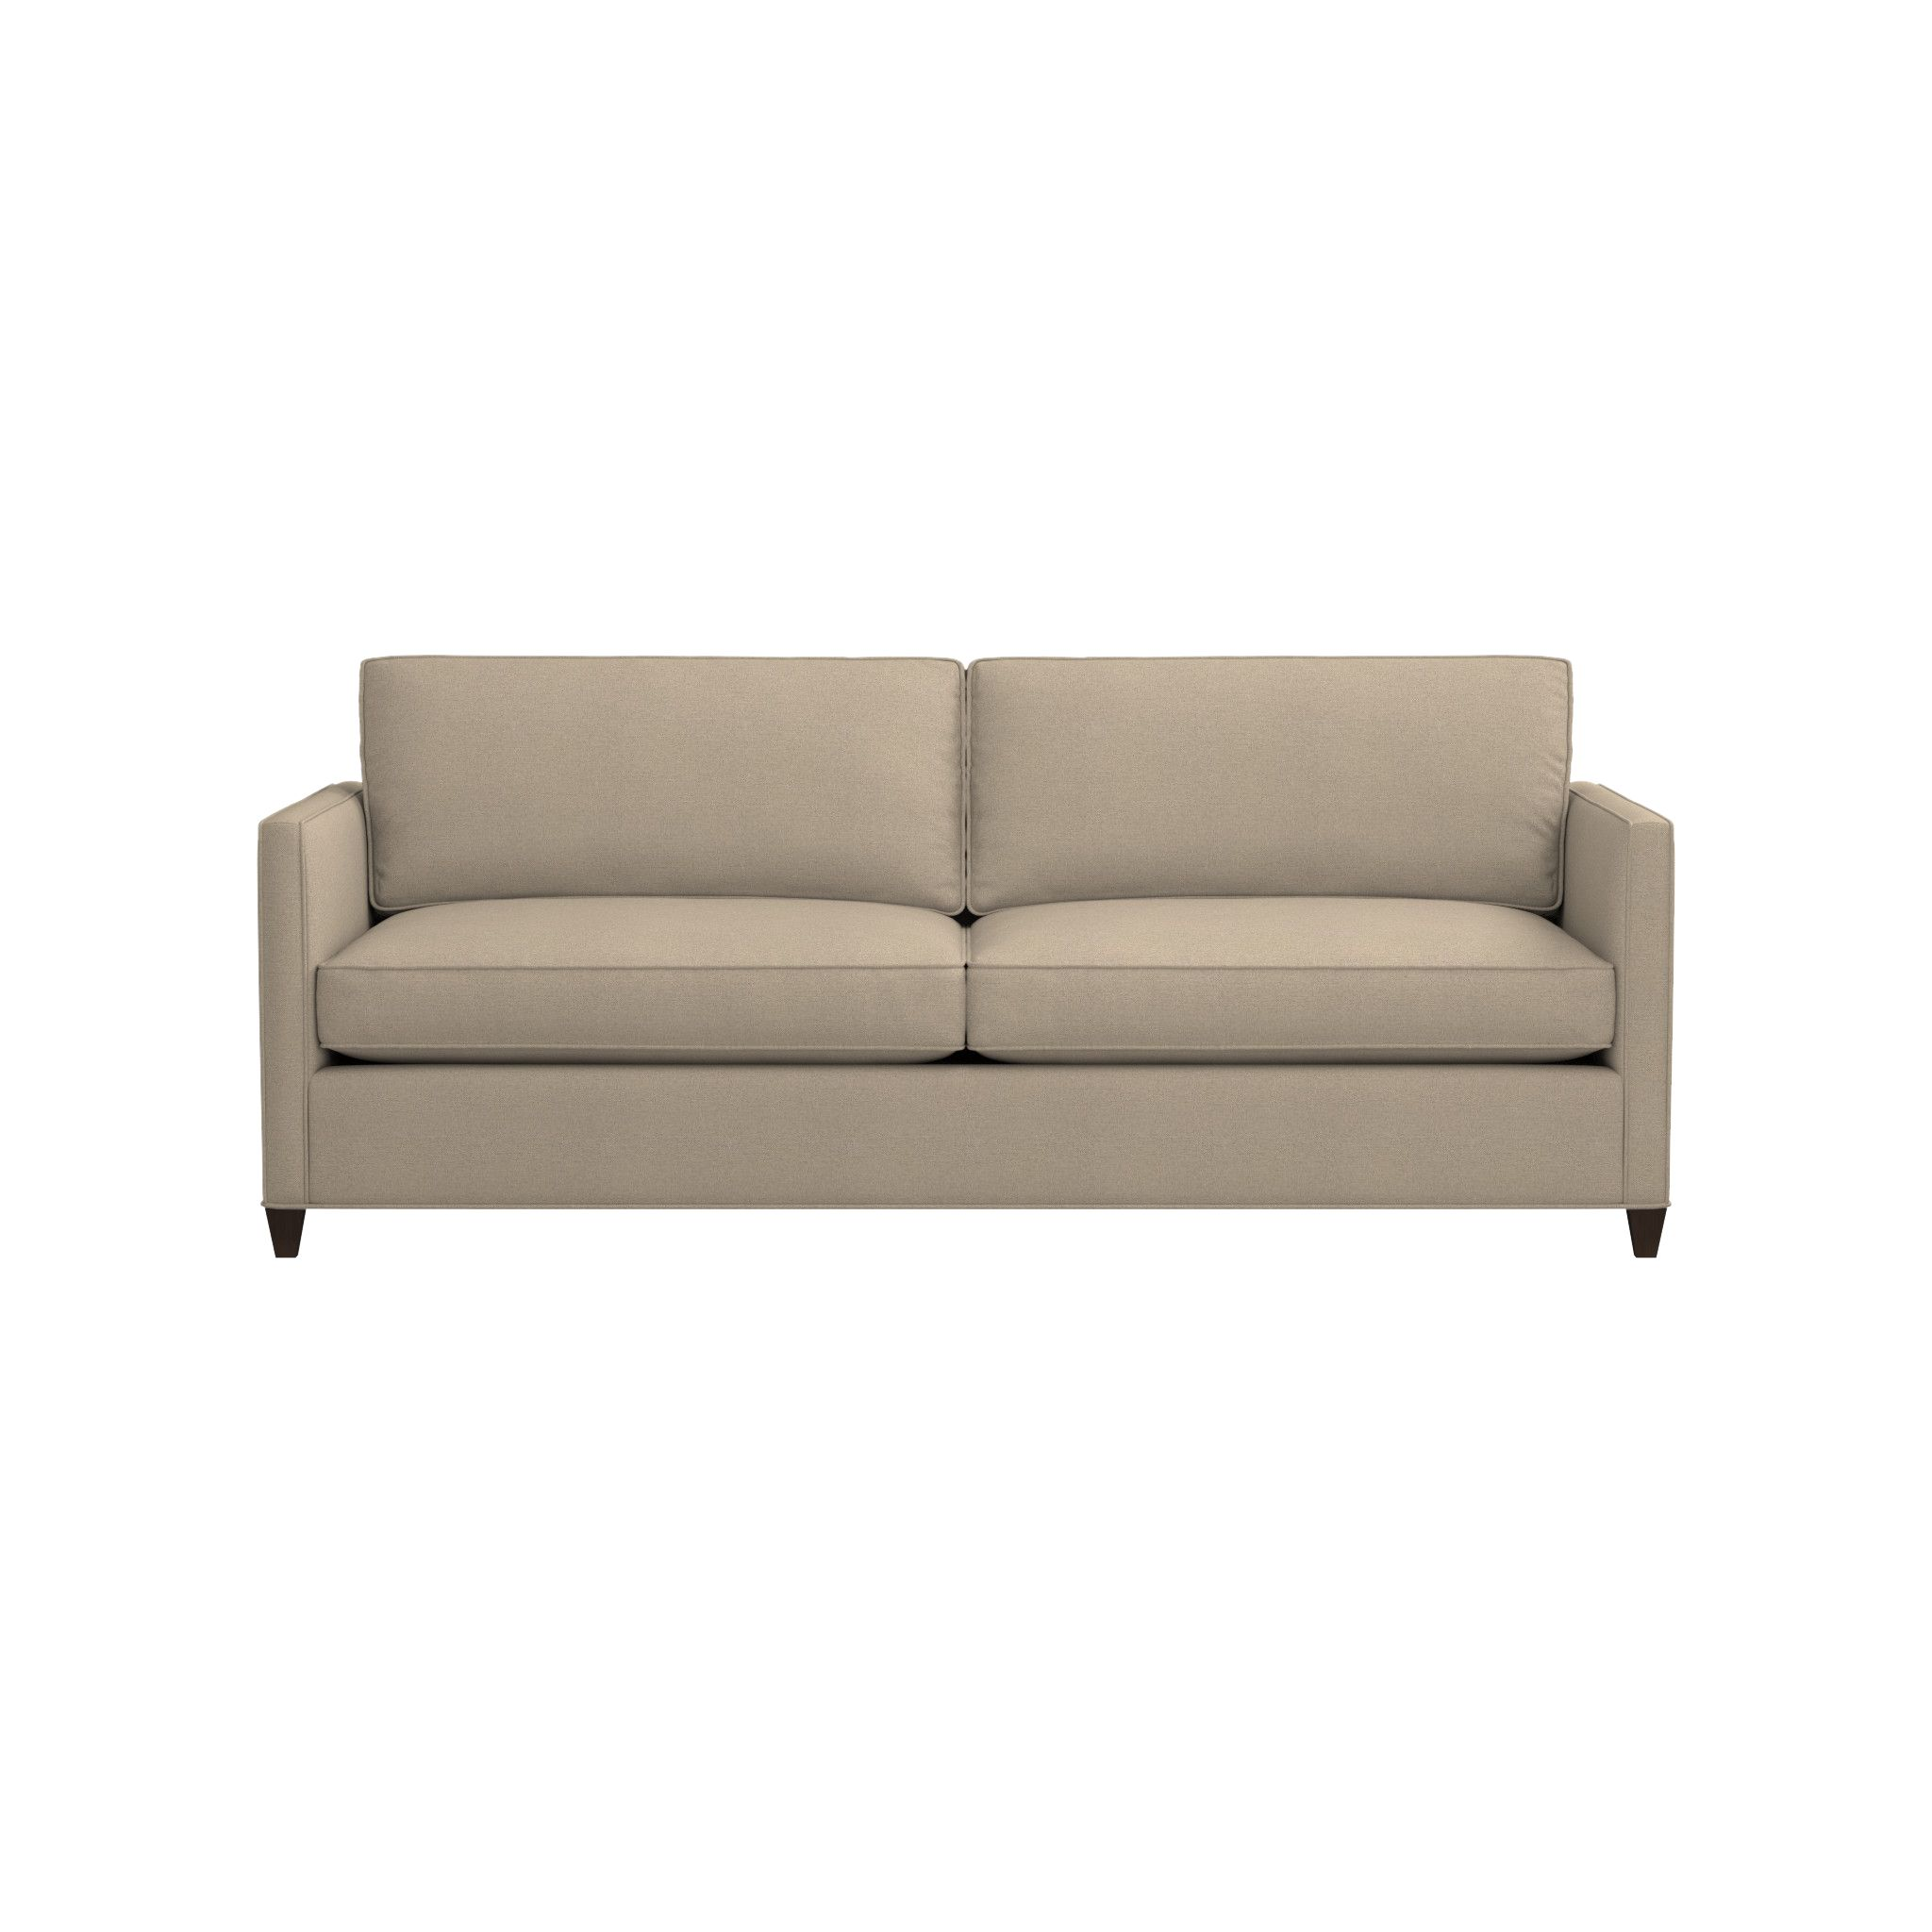 crate and barrel davis sofa leather standard height of side table furniture style for less